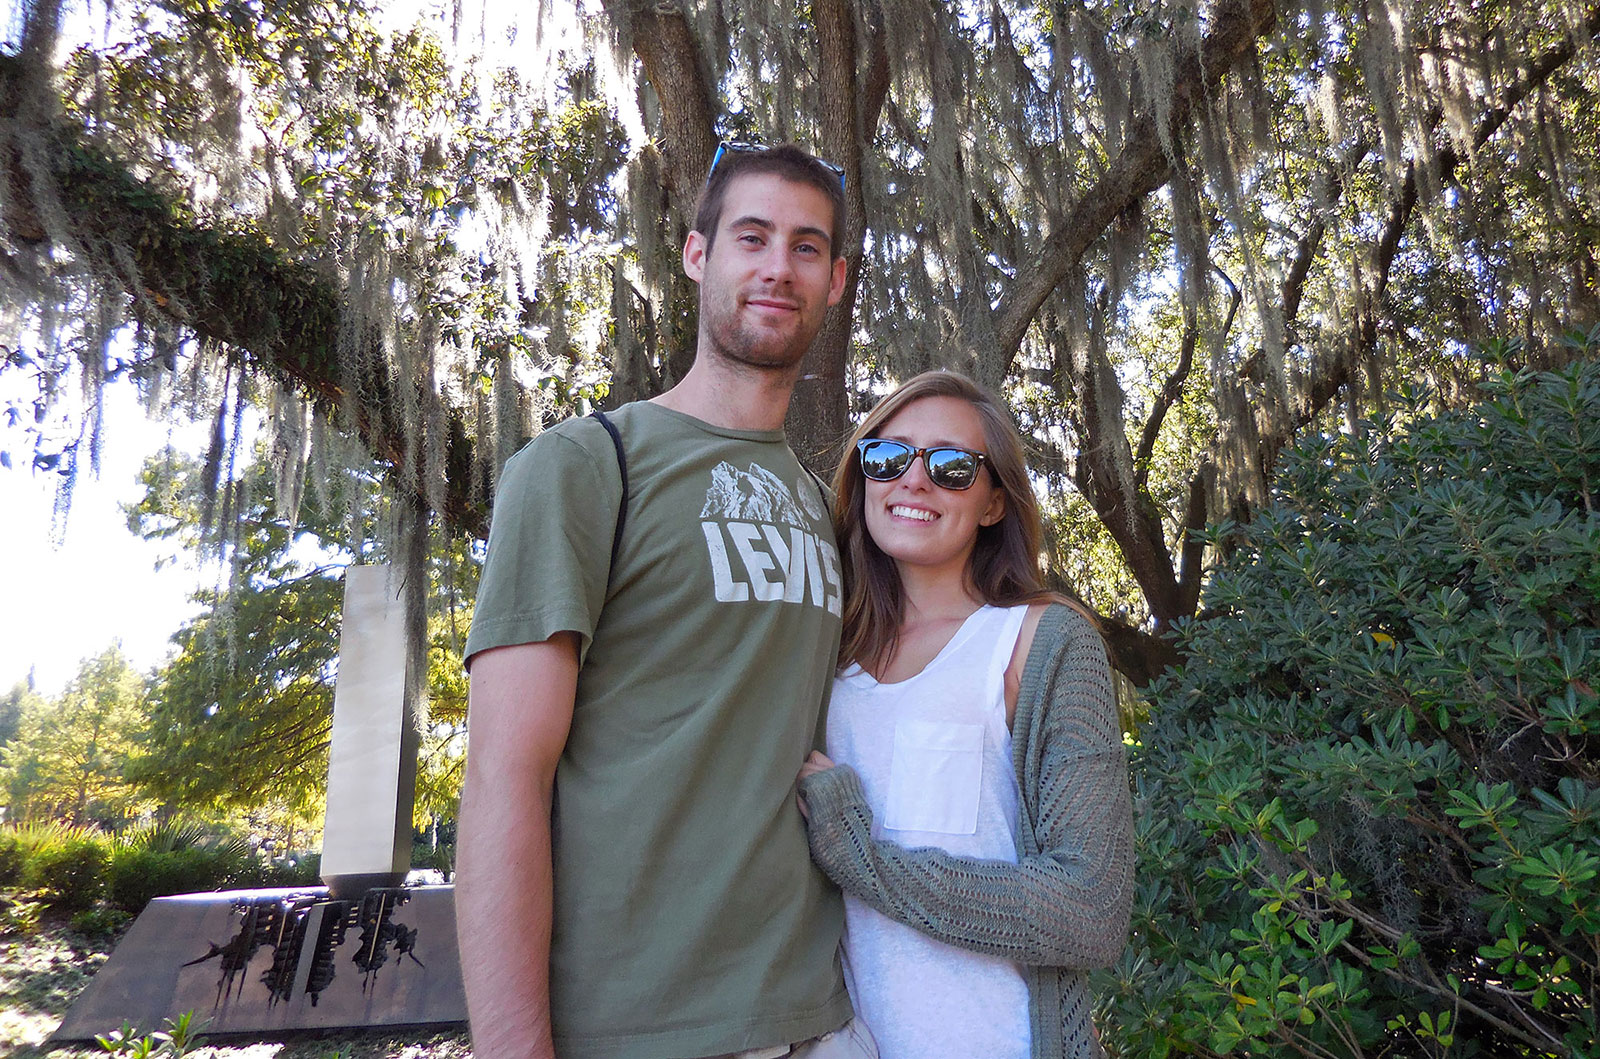 About Us: Brad and Leslie in the Sculpture Garden of City Park in New Orleans Louisiana